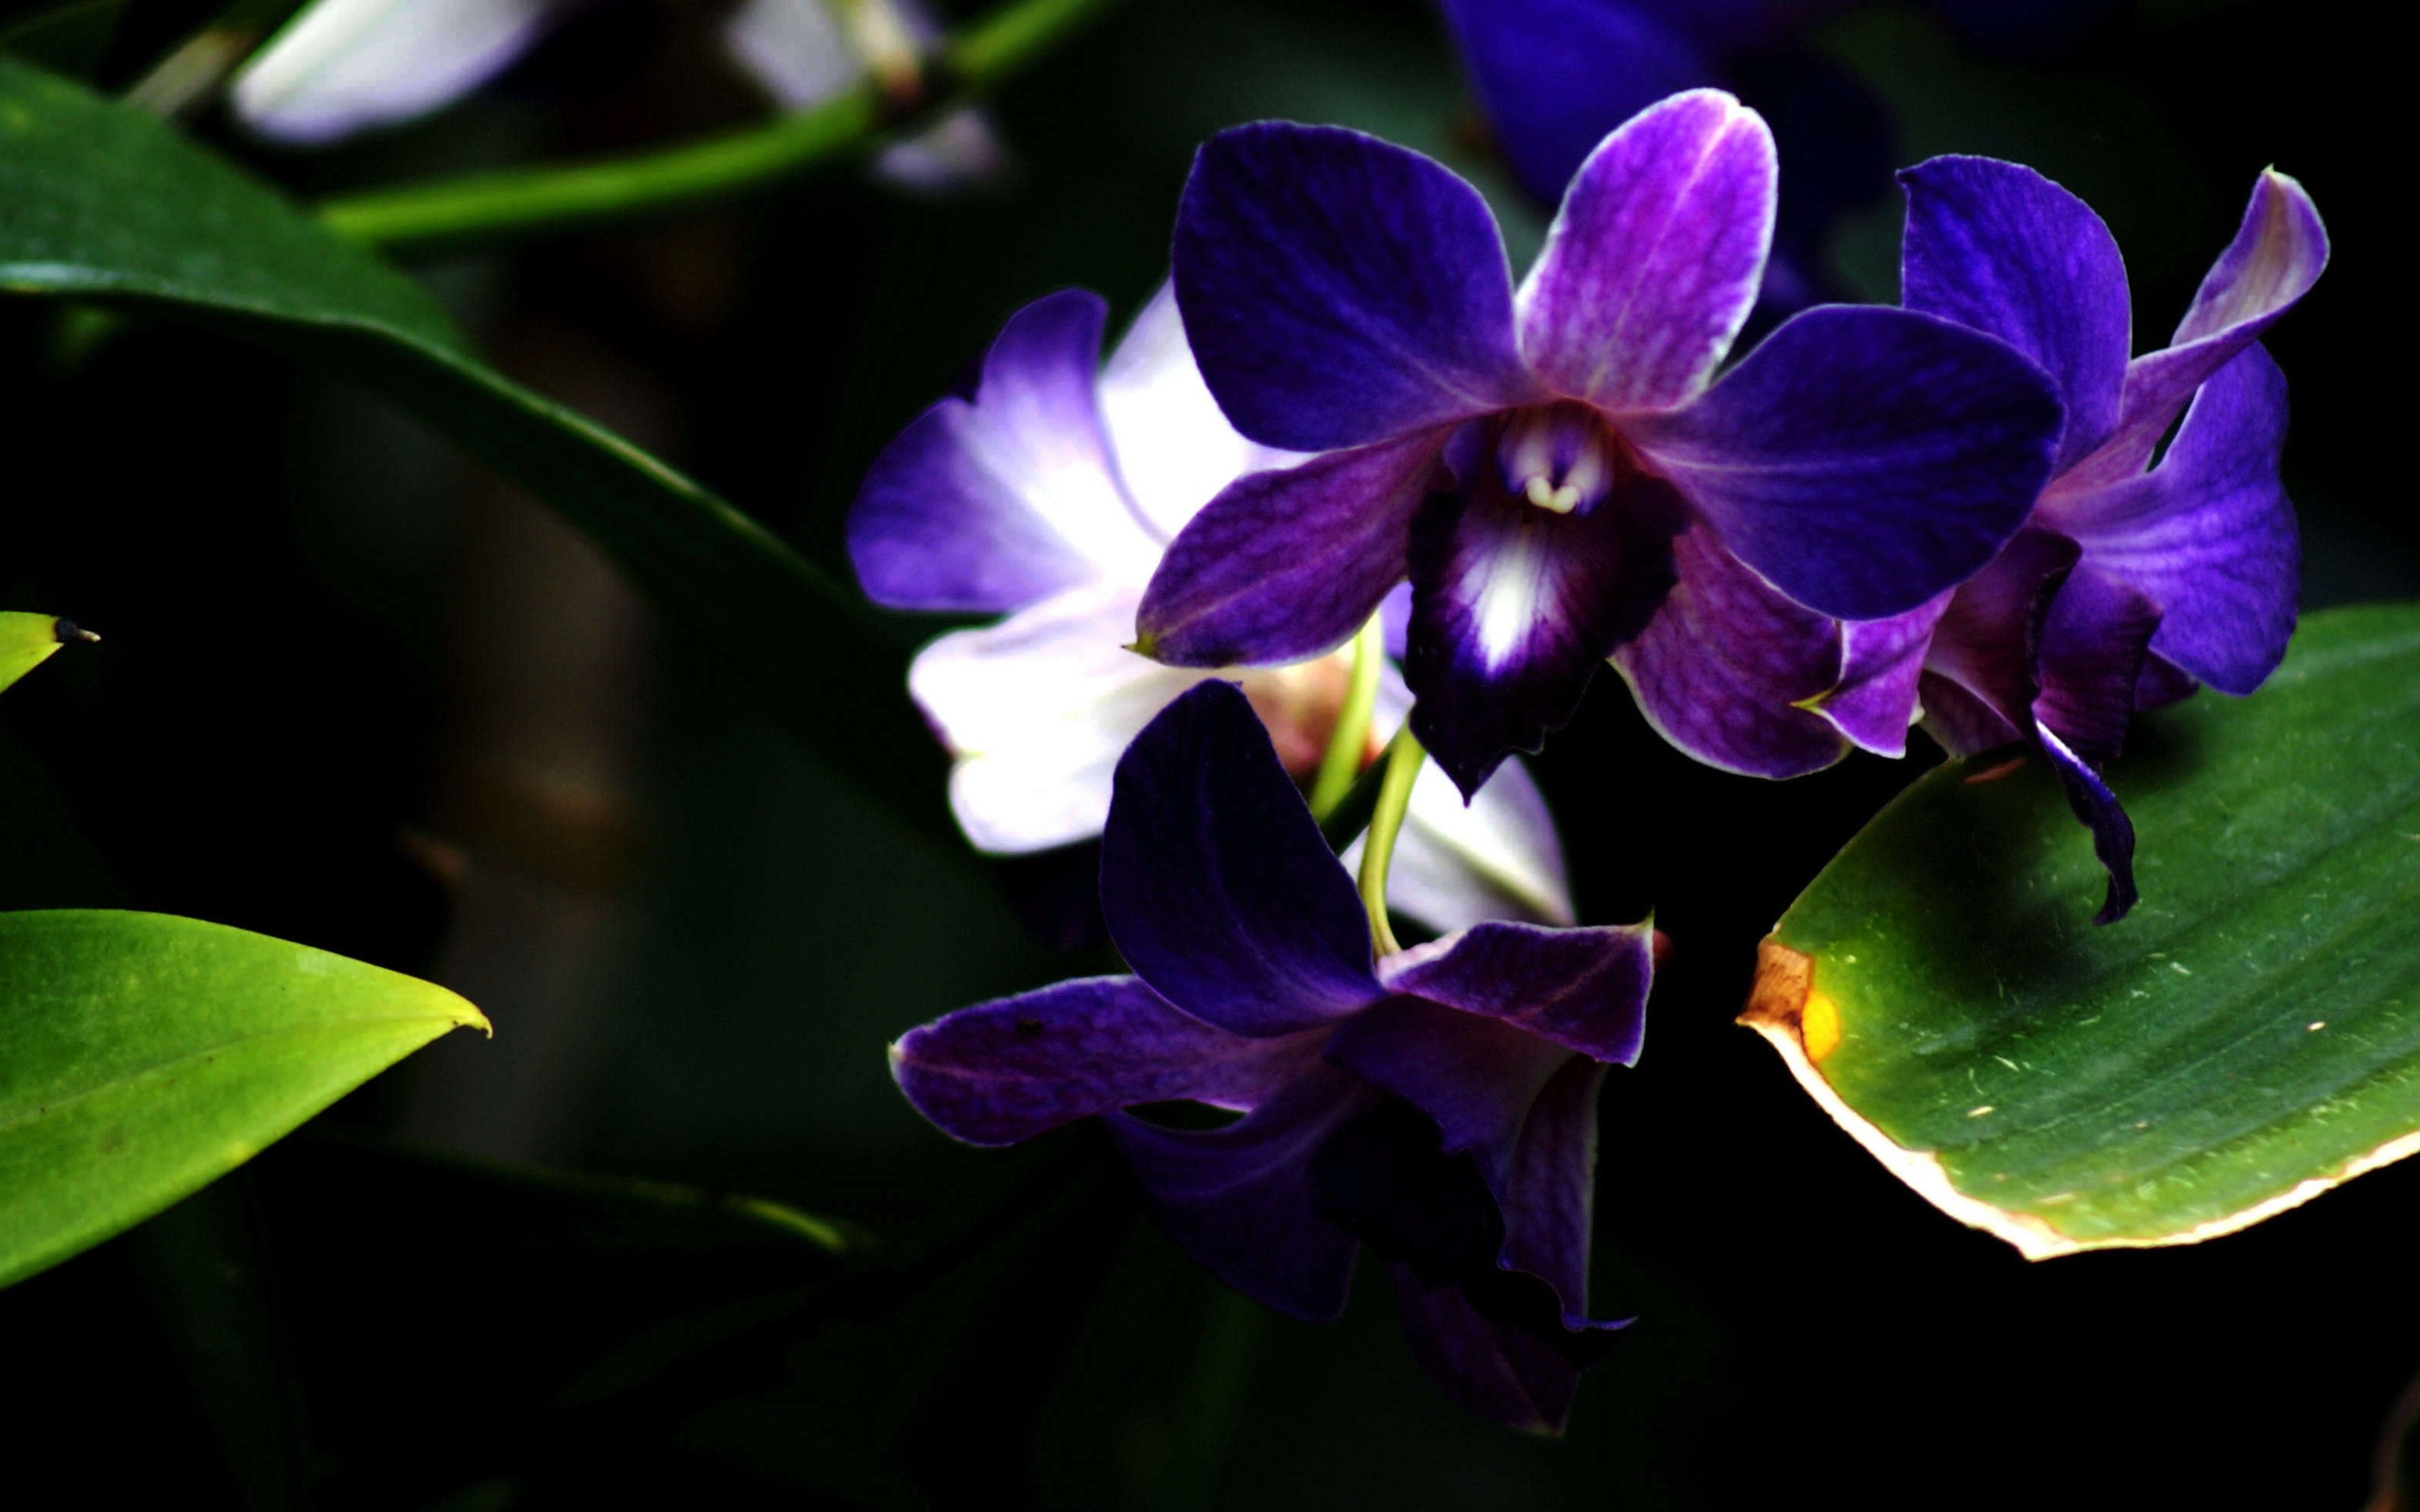 12 Purple Orchid Flower Photography wallpapers 807 2560x1600